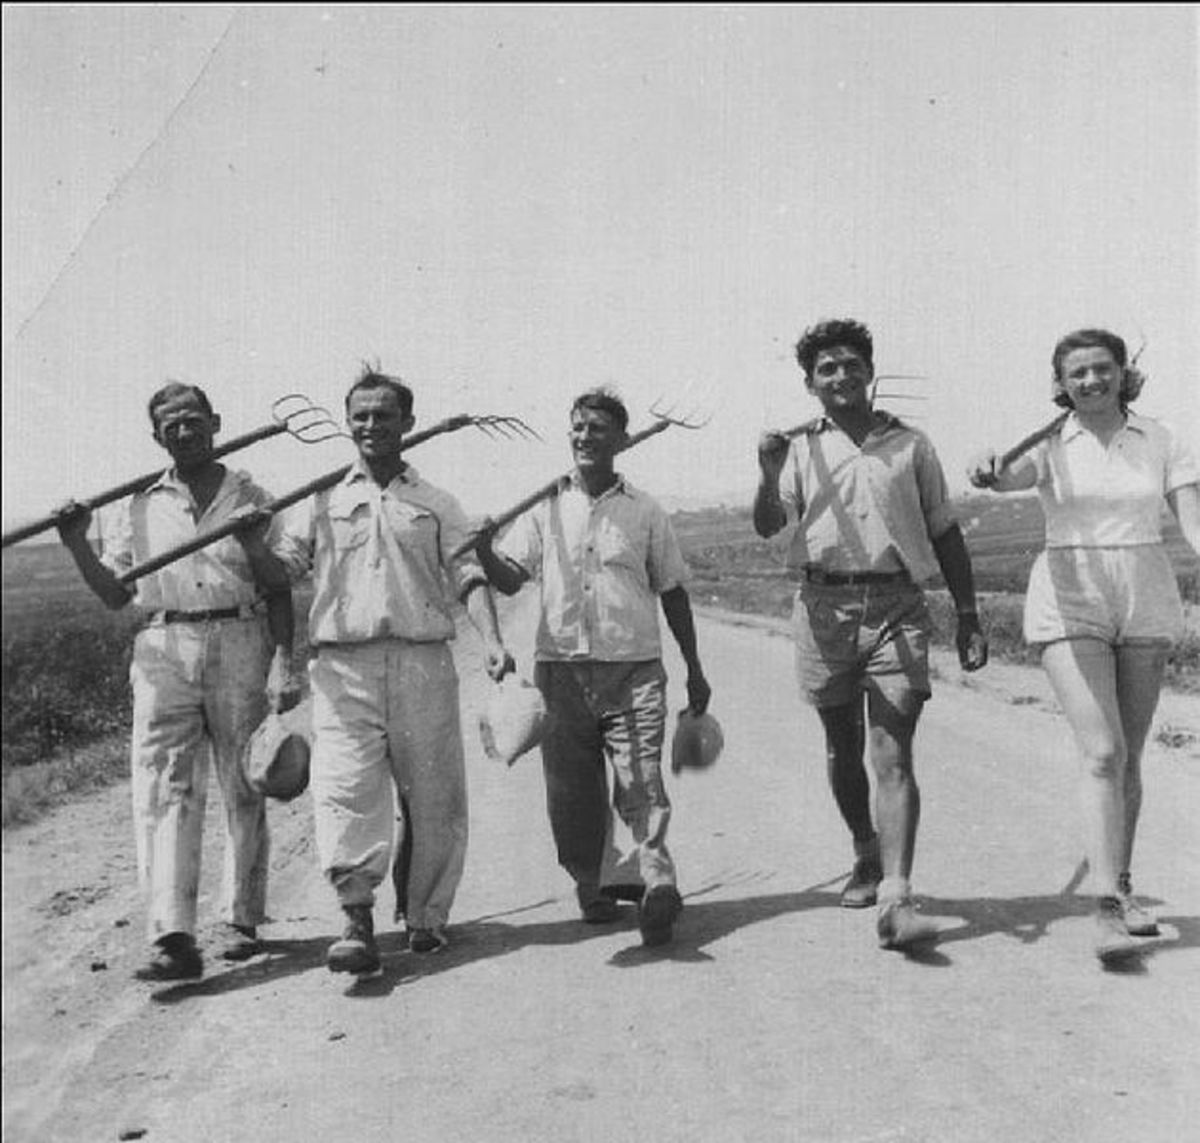 Agricultural work is of paramount importance for those reared in a kibbutz.